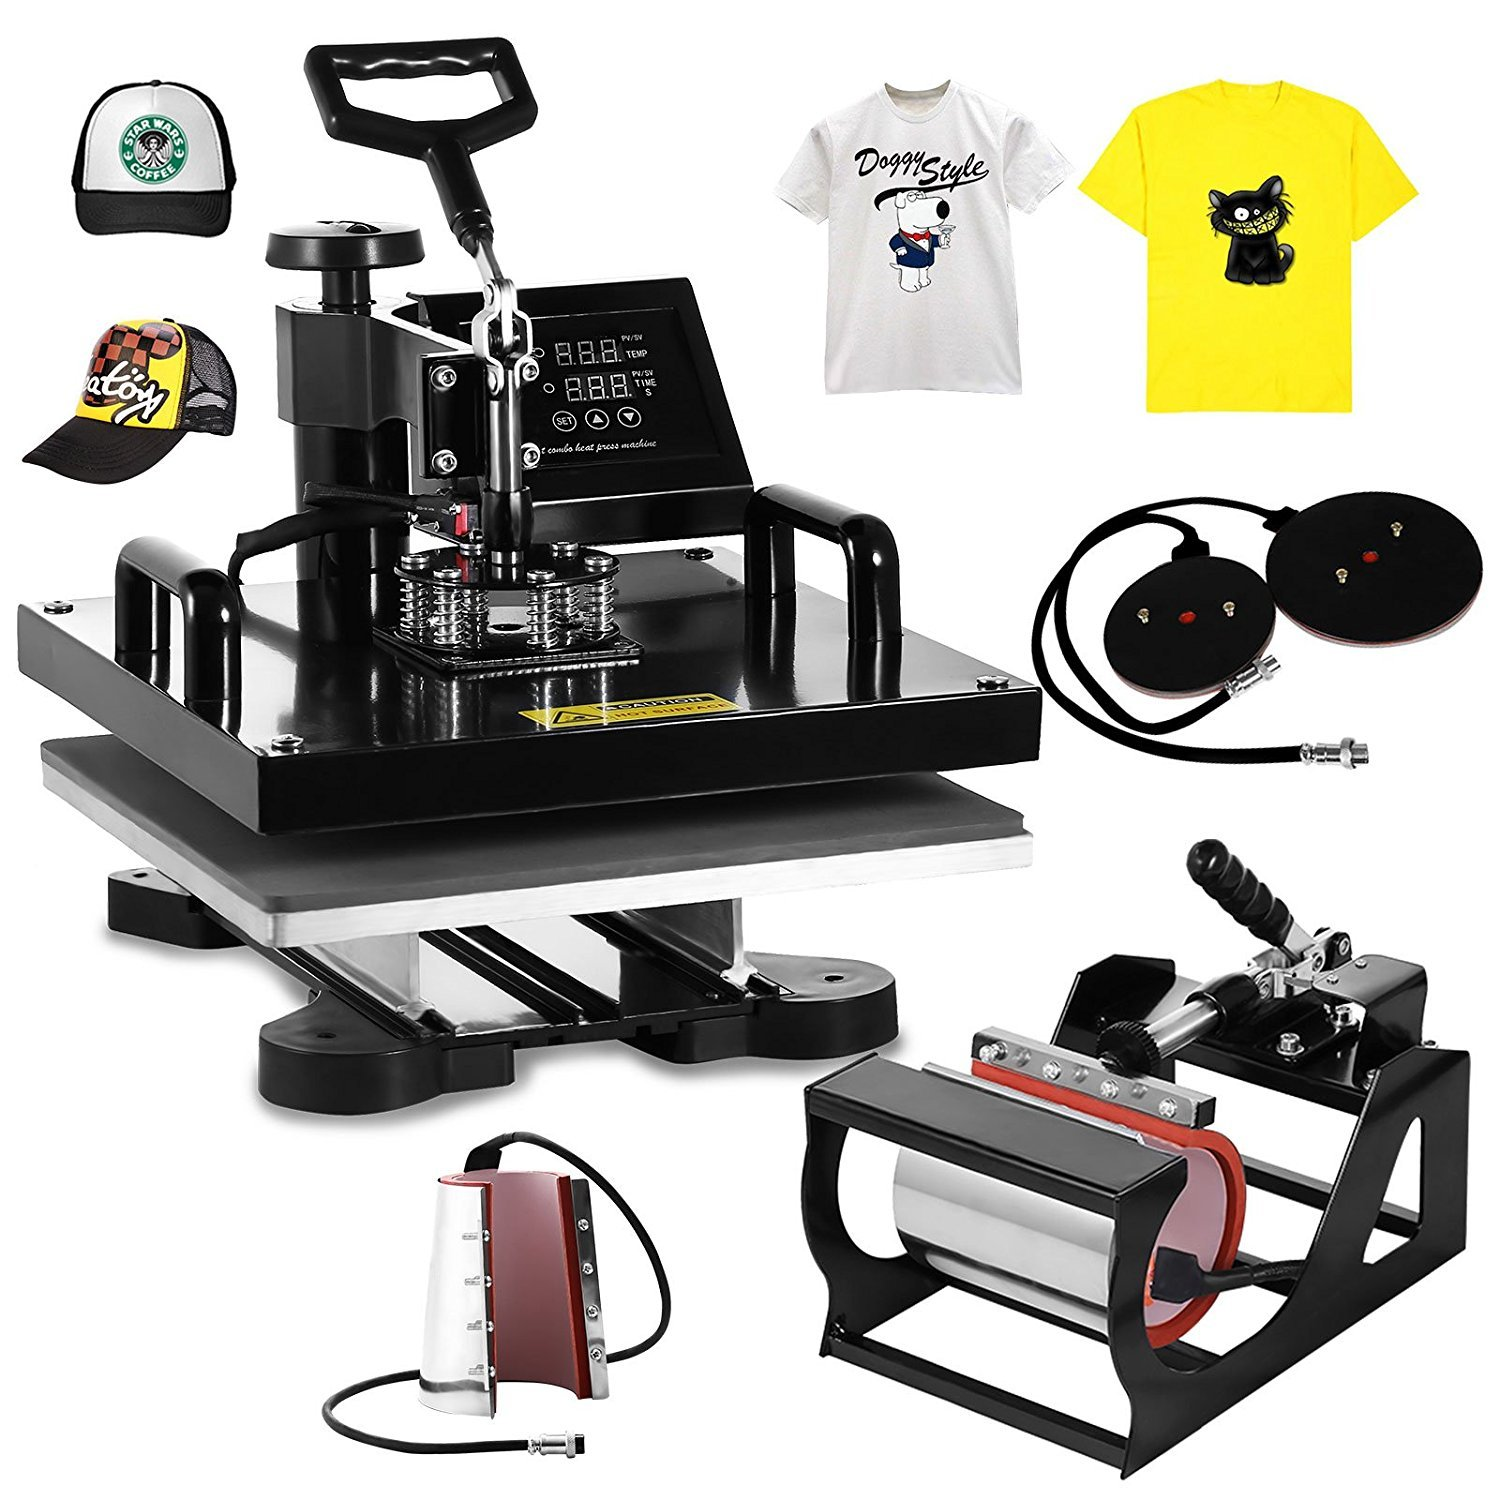 "BestEquip 6 in 1 15"" x 15"" Multi Heat Press"